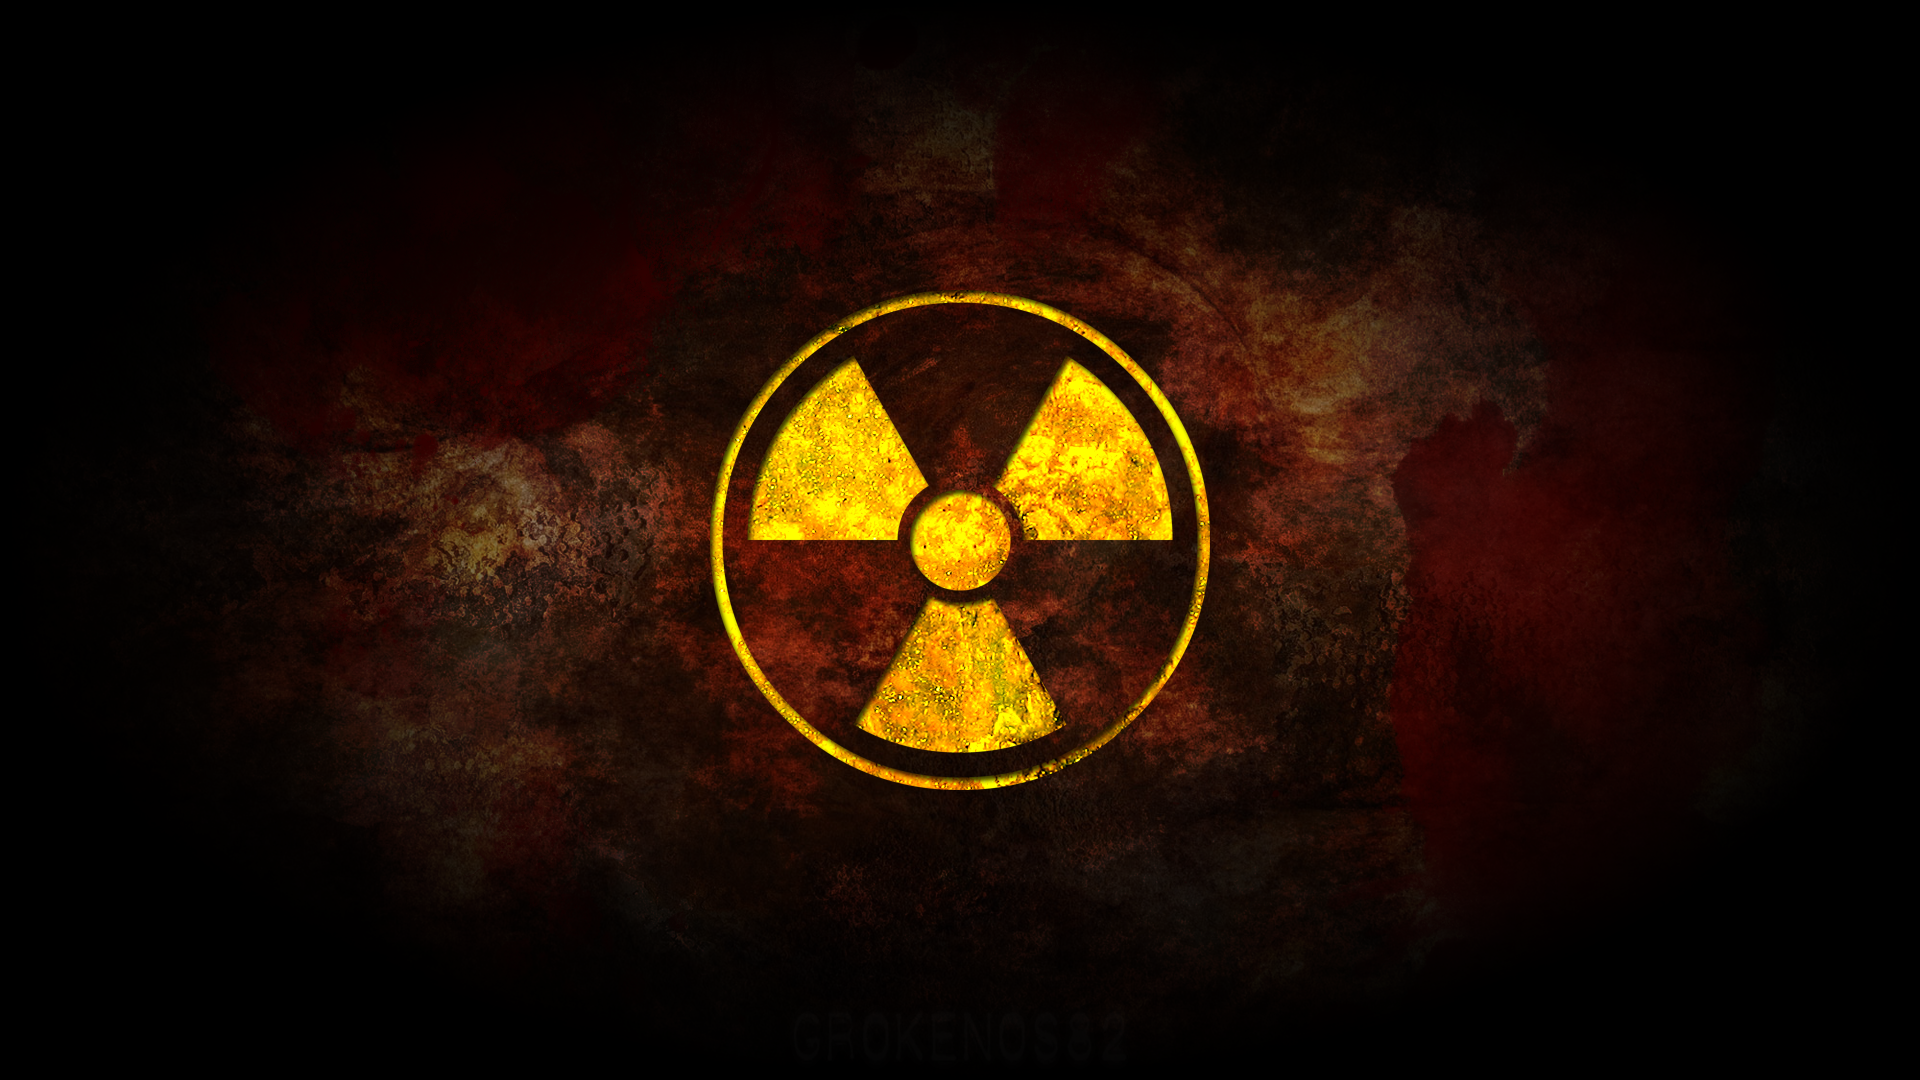 HD Wallpaper Radioactive by Grokenos82 HD Wallpaper Radioactive by Grokenos82